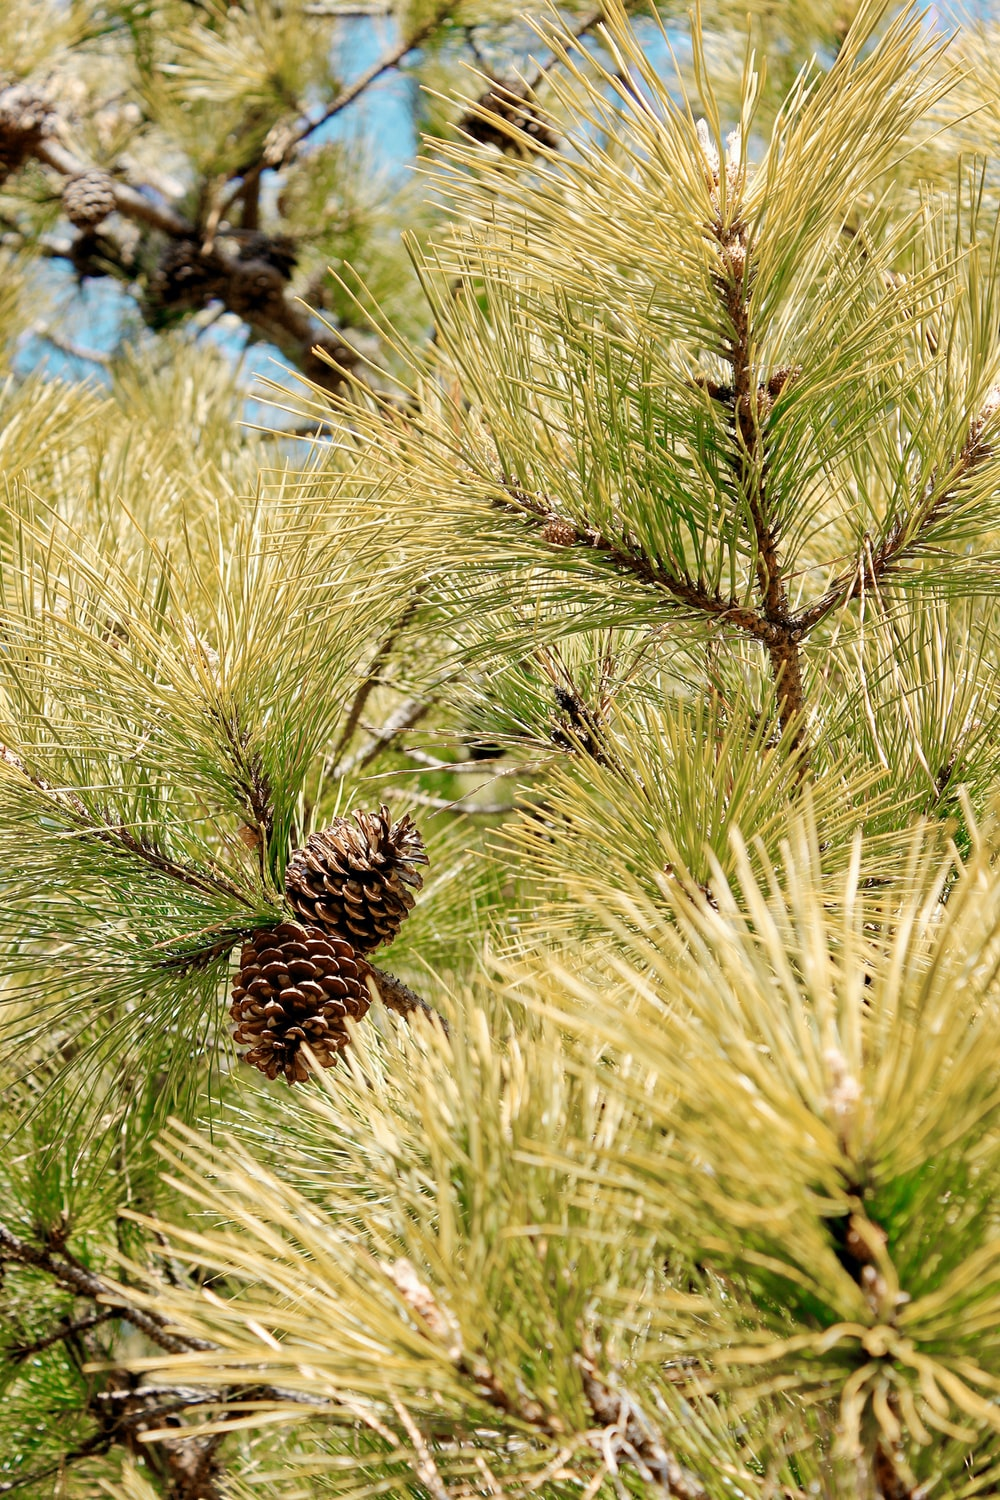 brown pine cone on green grass during daytime